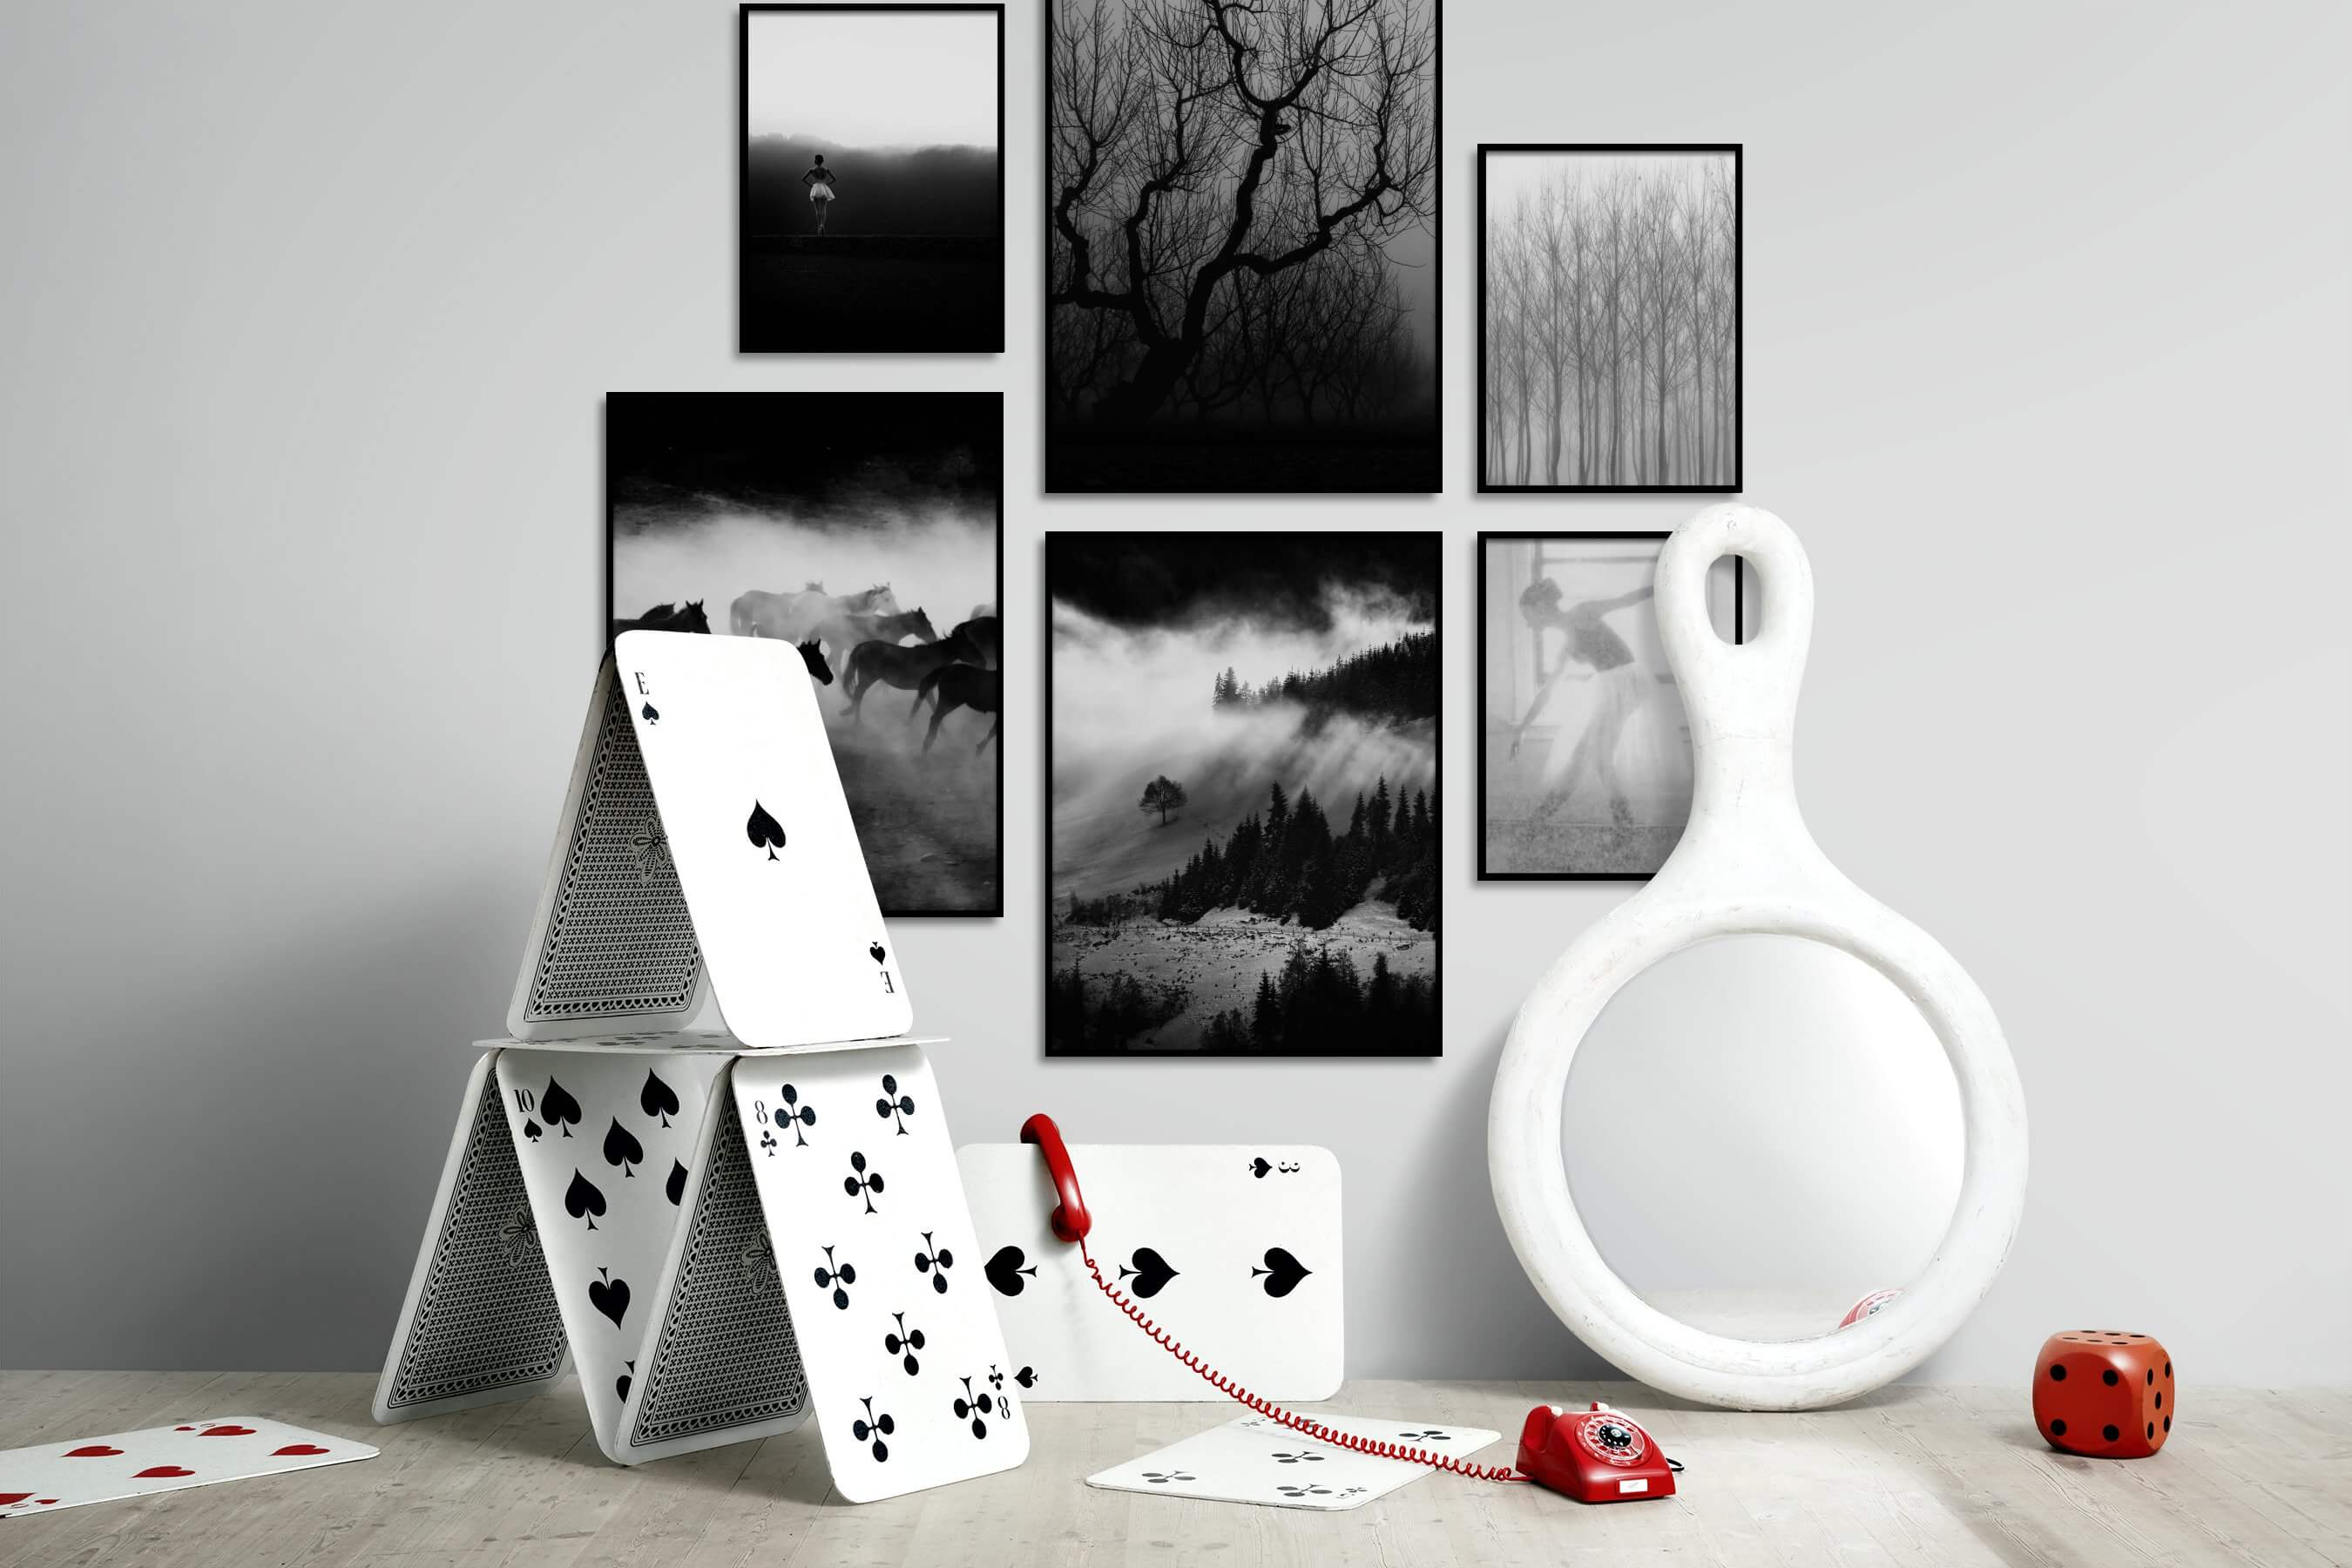 Gallery wall idea with six framed pictures arranged on a wall depicting Fashion & Beauty, Black & White, Mindfulness, For the Moderate, Nature, Animals, and Country Life